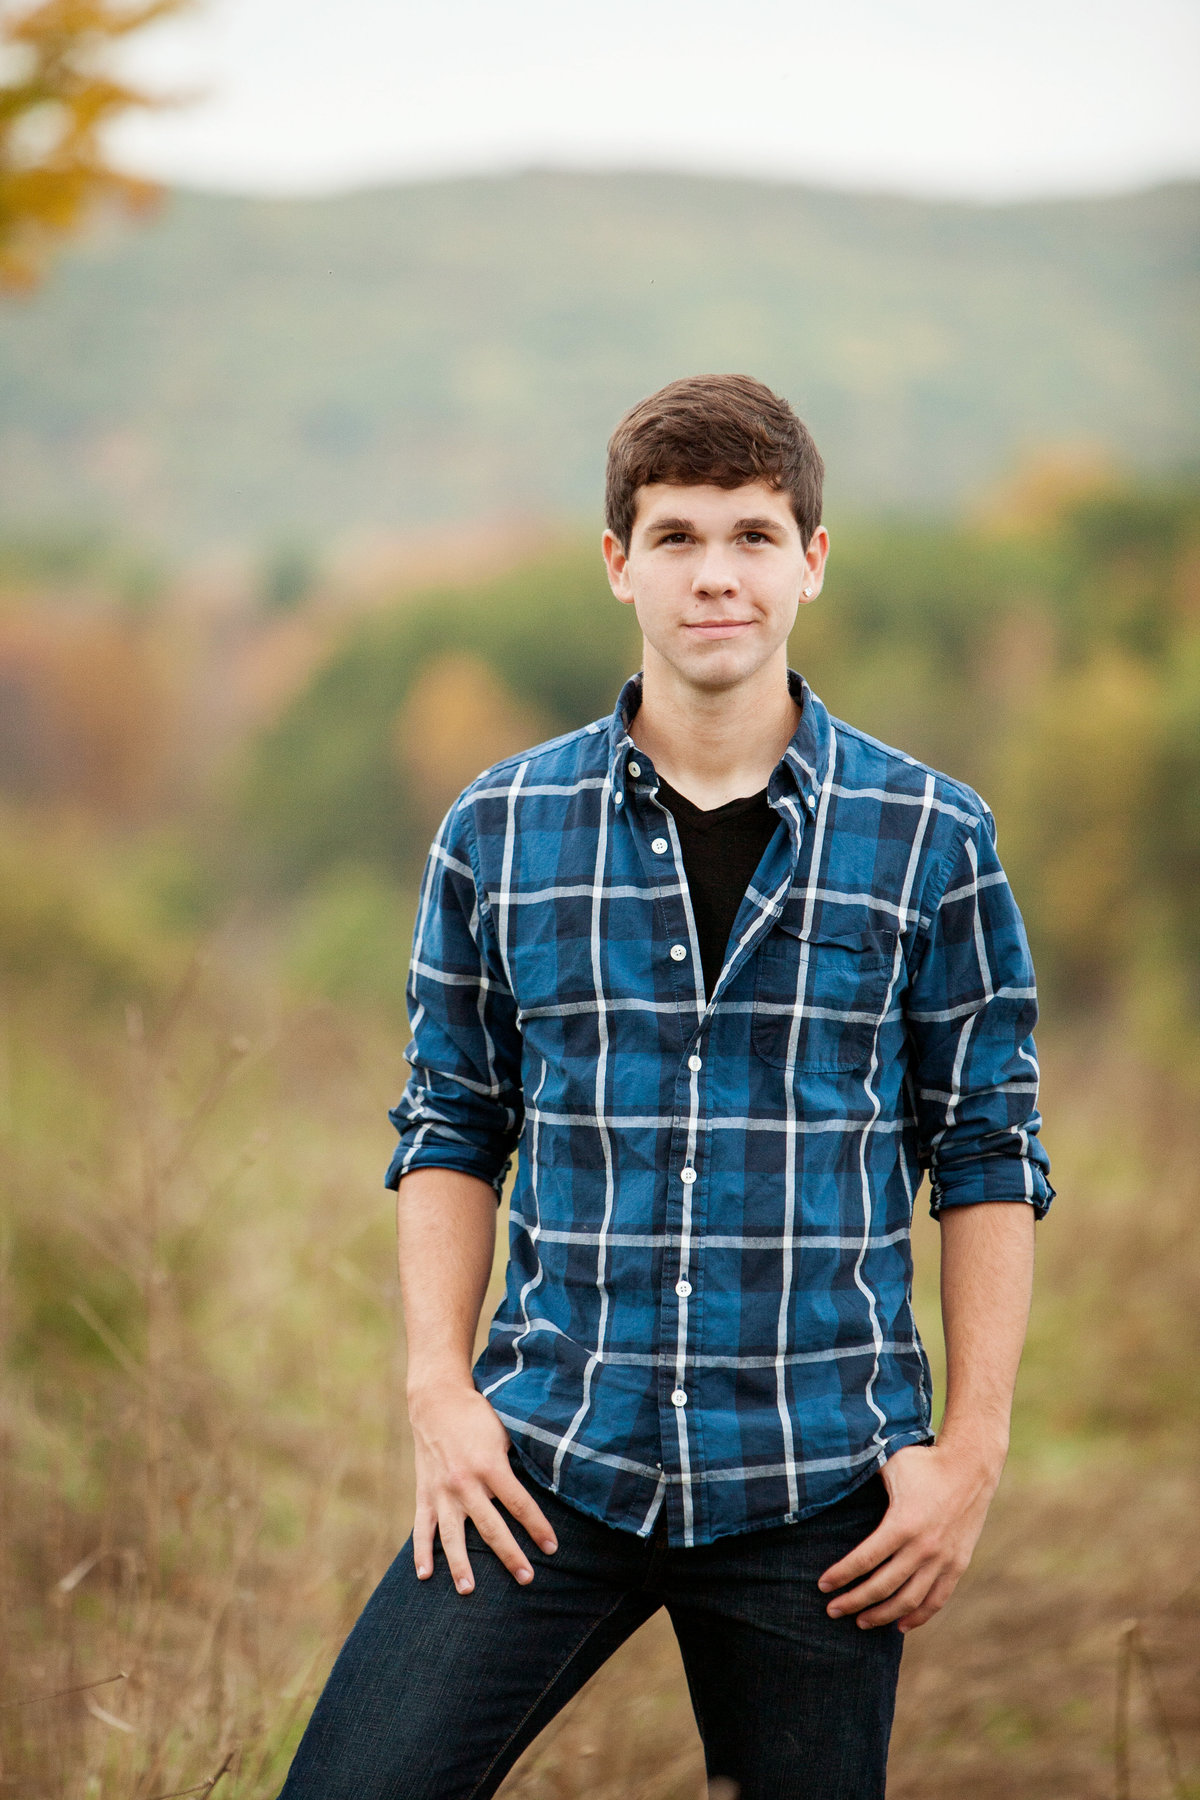 outdoor casual high school senior photographer in the Hudson Valley NY